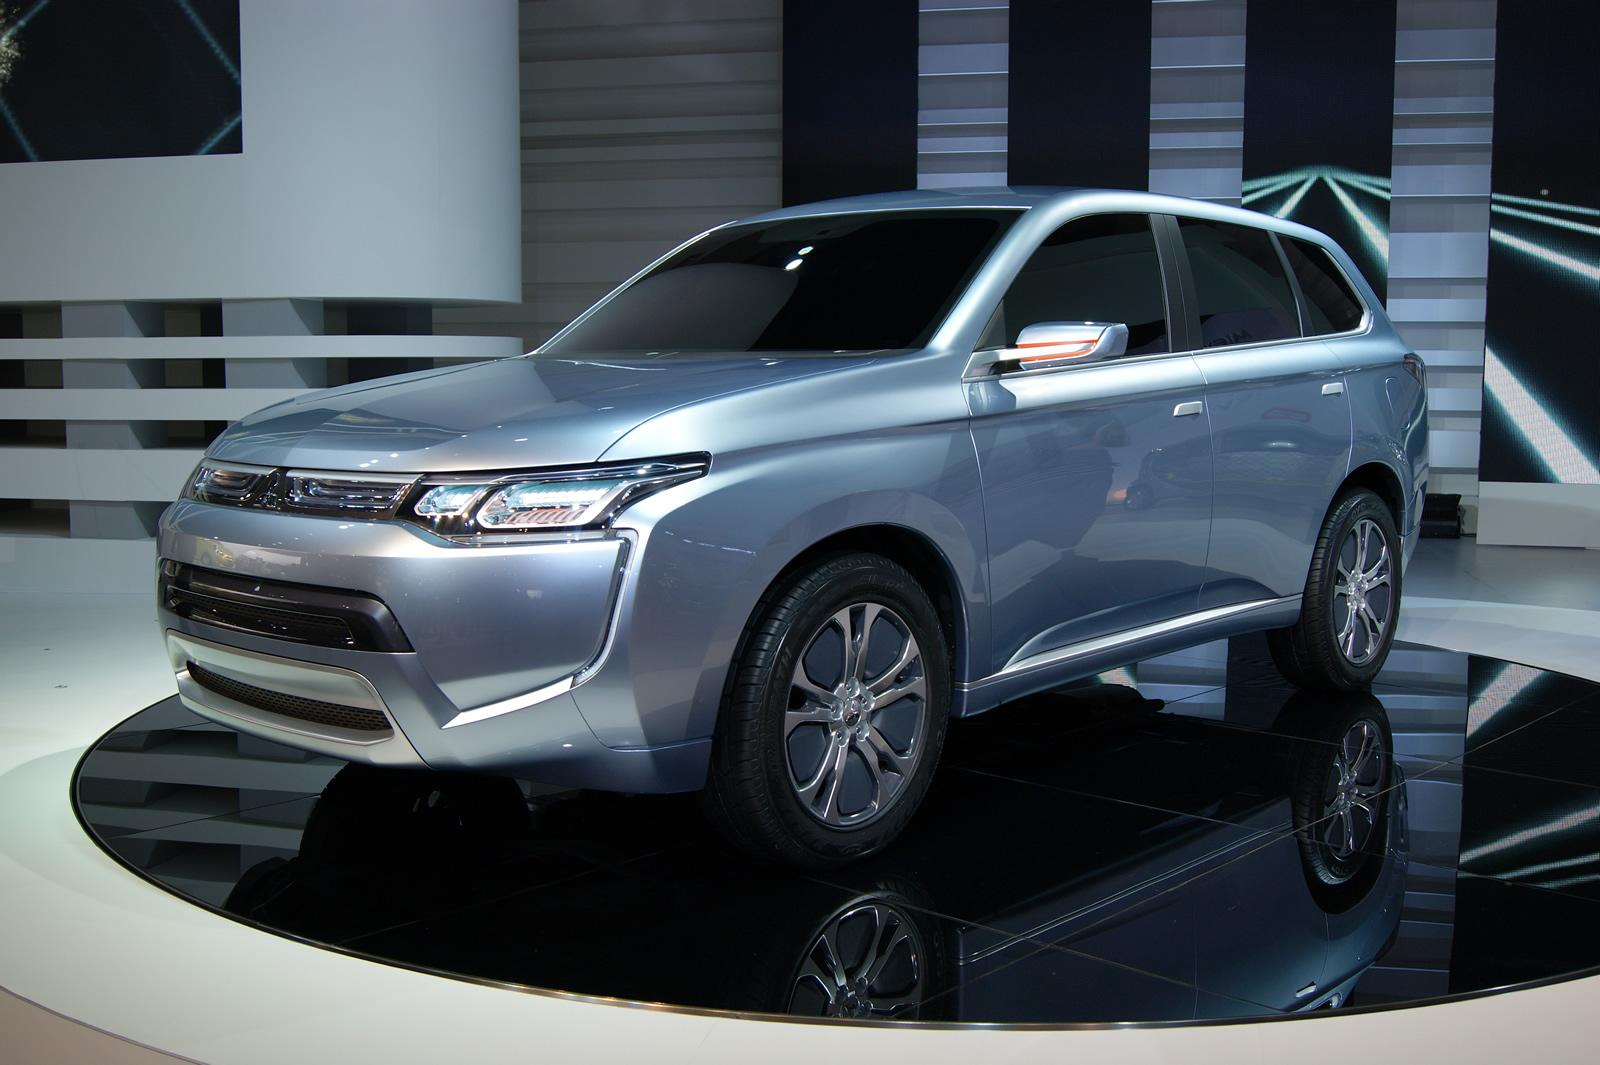 mitsubishi px miev ii awd hybrid suv concept unveiled electric vehicle news. Black Bedroom Furniture Sets. Home Design Ideas